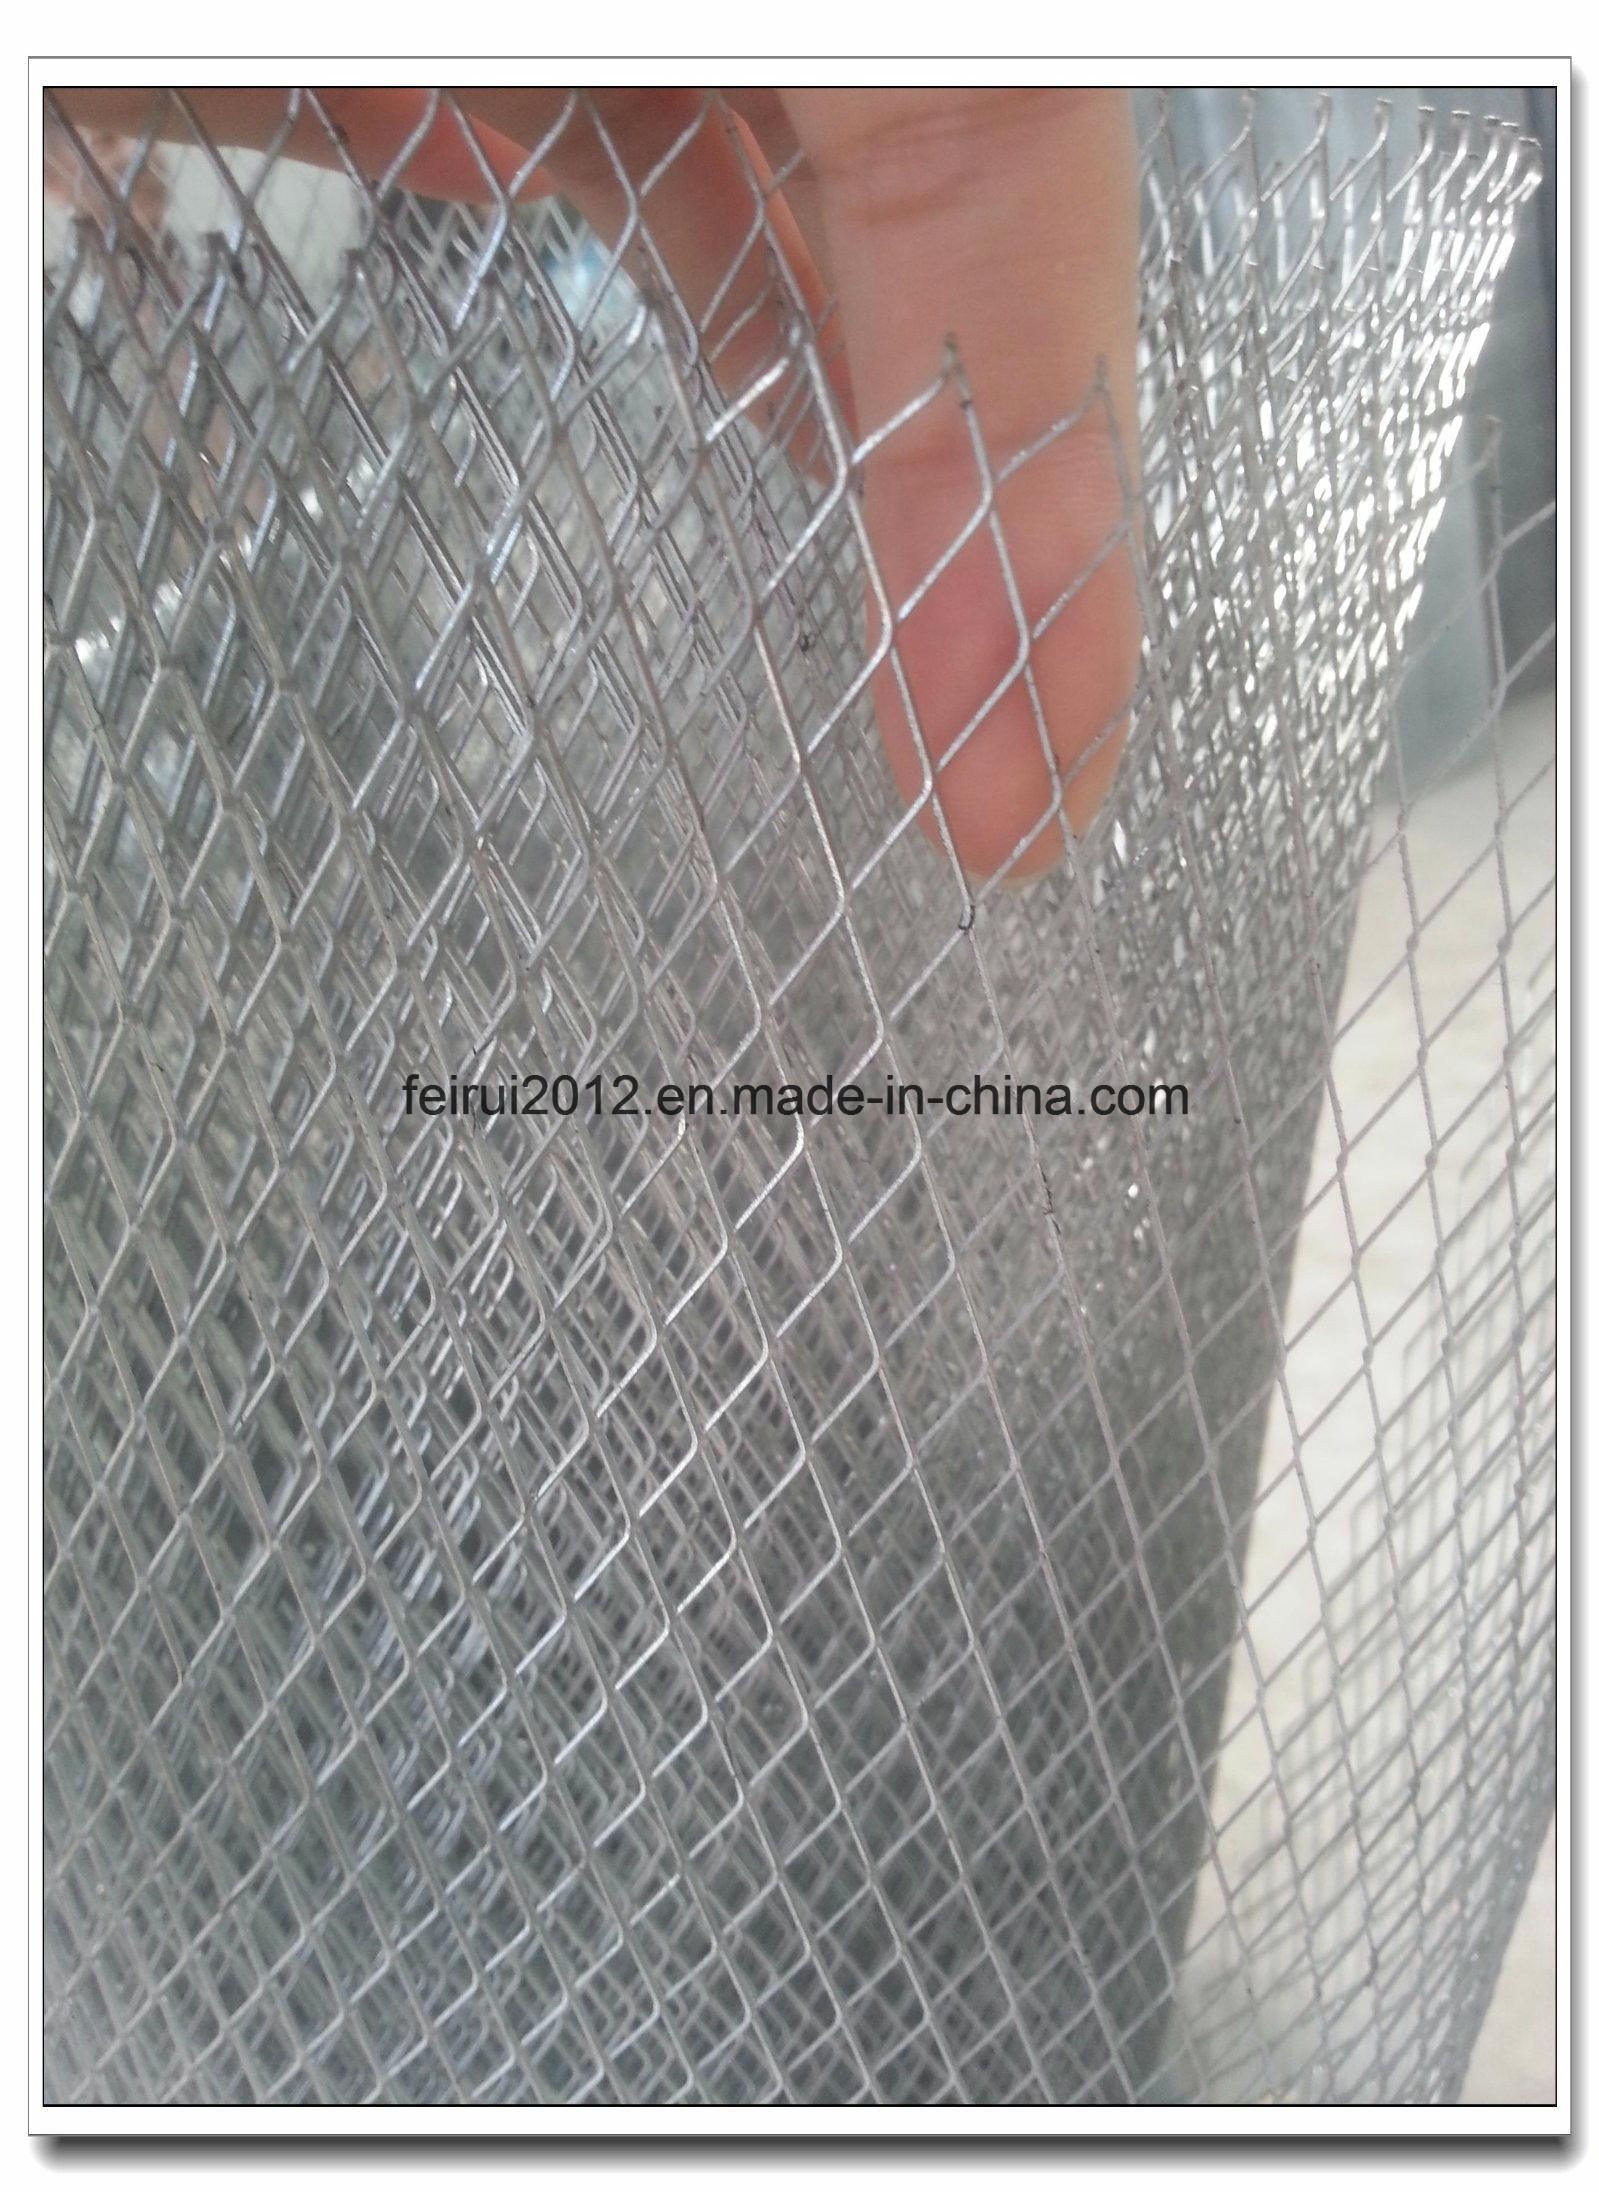 China Nigeria Market Galvanized Poultry Chicken Net - China Expanded ...